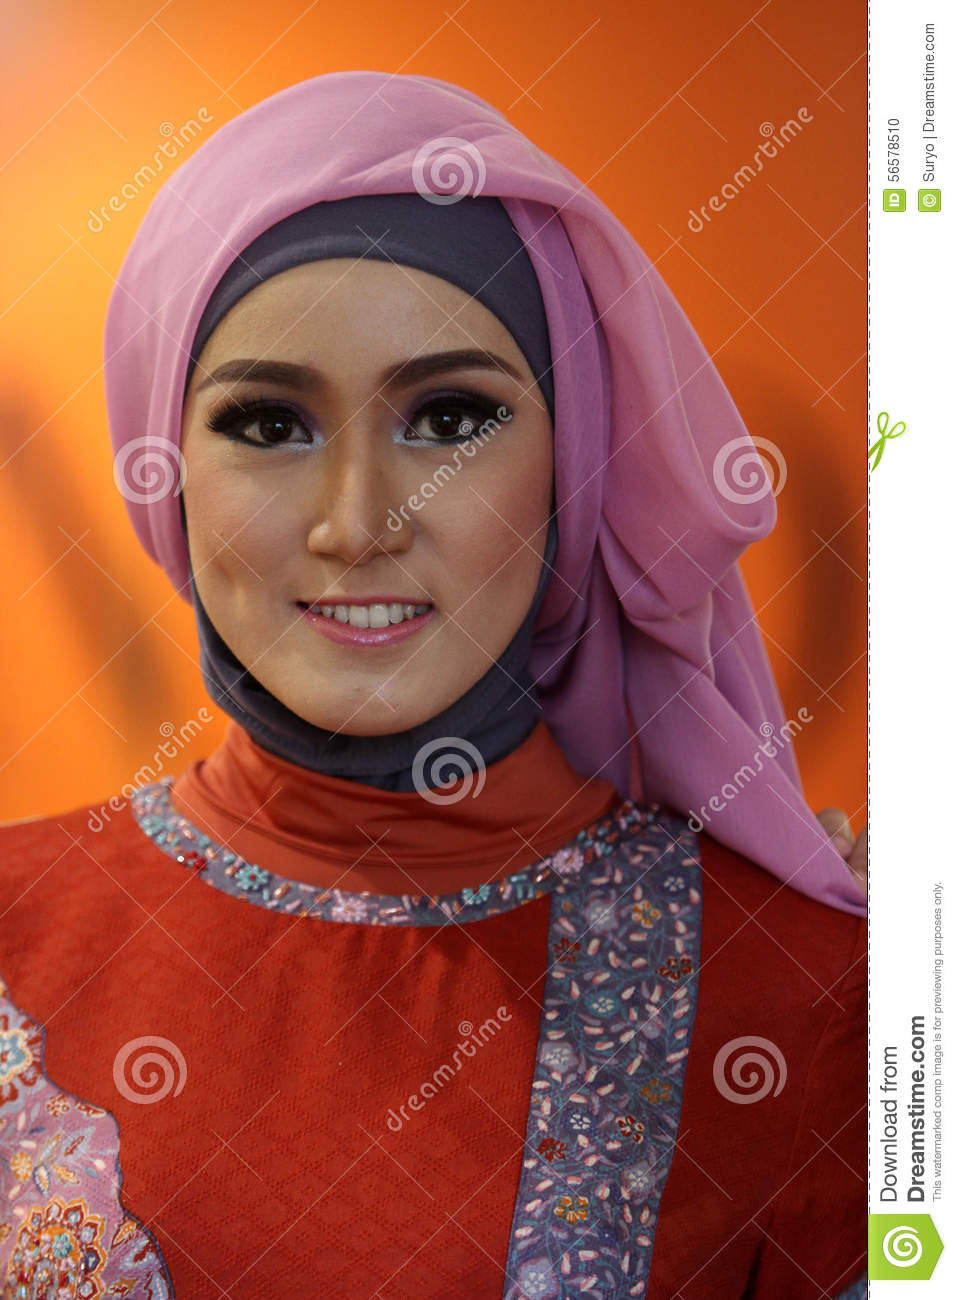 muslim singles in central city There's tons of singles we're one of the biggest dating sites on earth,  mingle 2 has singles in every city in the us,  muslim singles divorced singles milfs.